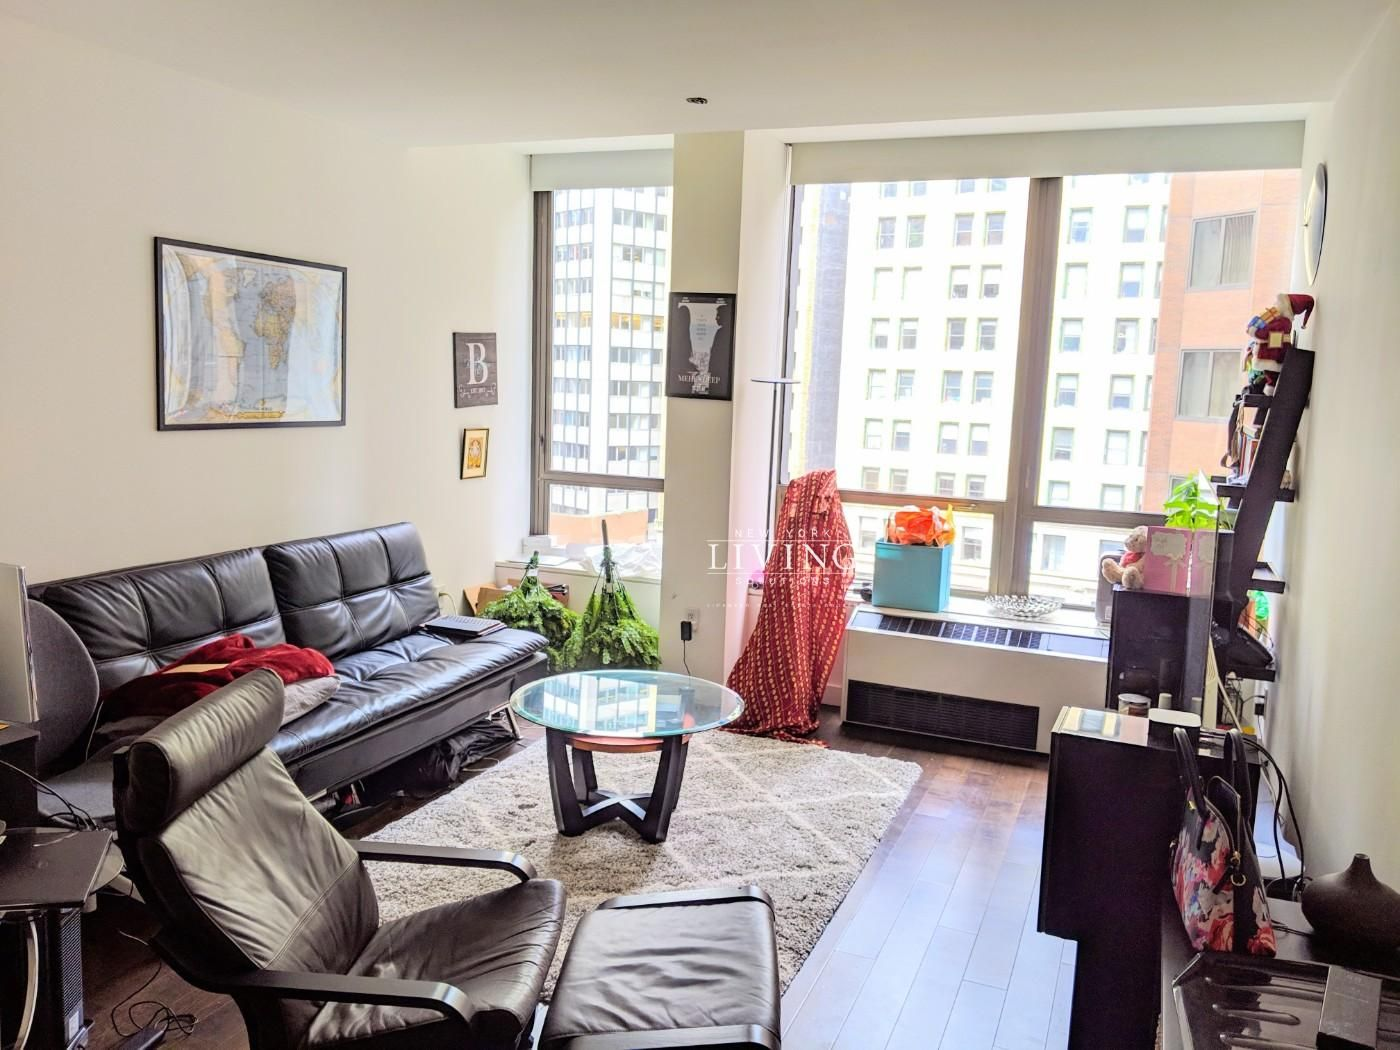 1 Bedroom 1 Bathroom Apartment For Sale In Financial District Apartments For Sale New York Apartments 1 Bedroom Apartment